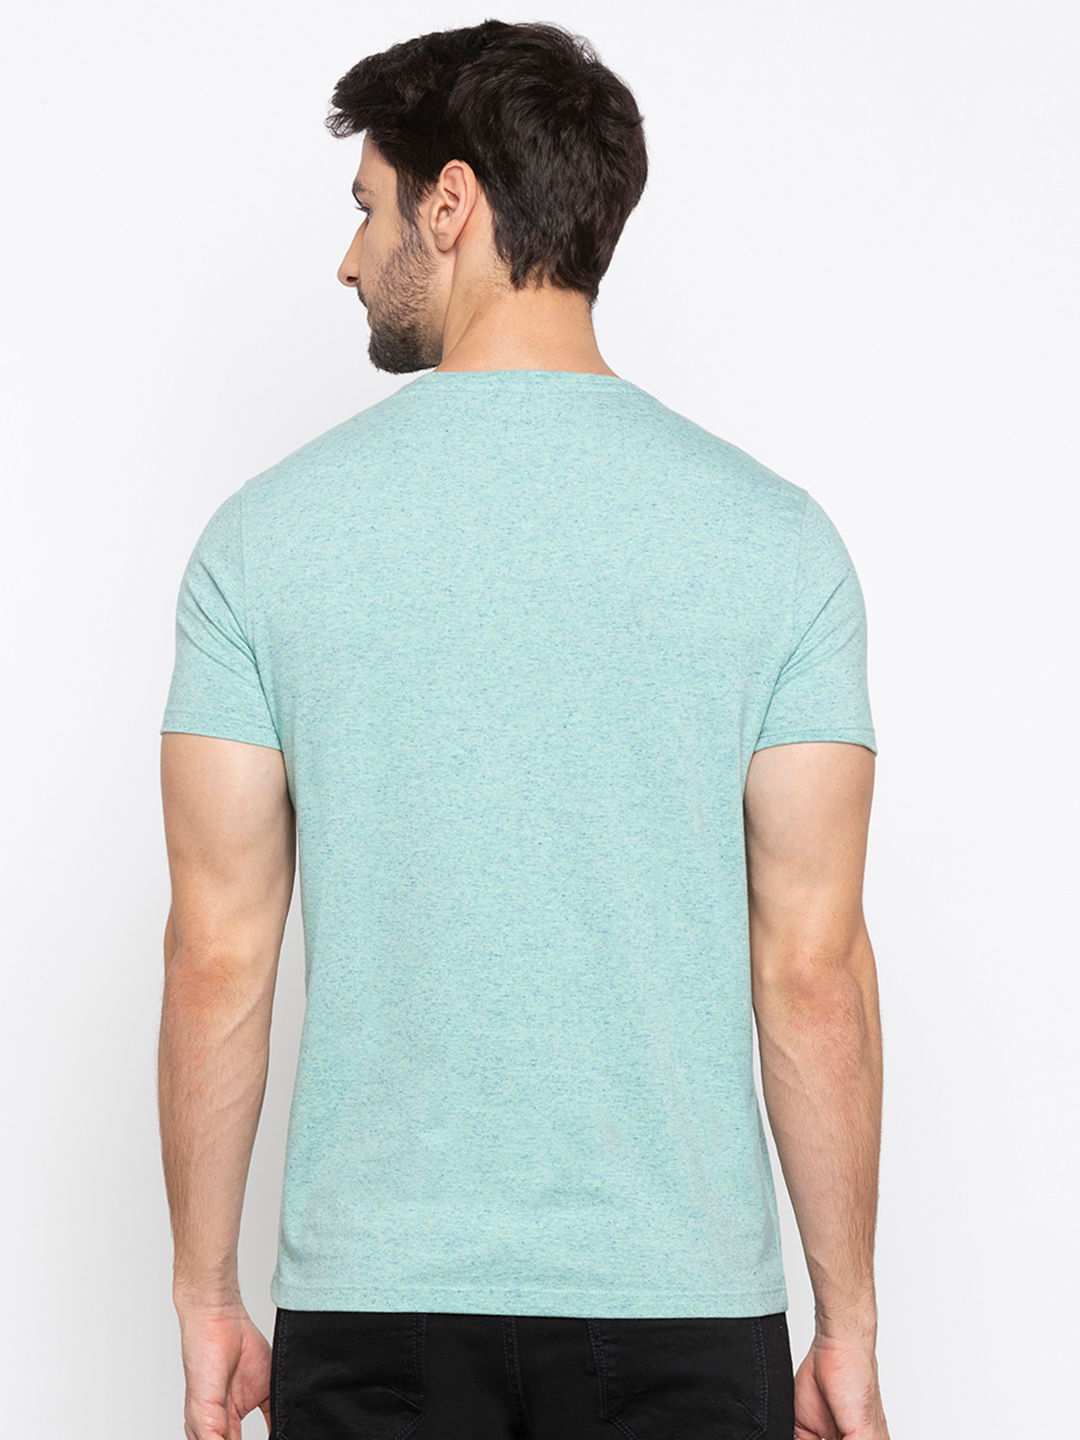 Mint Green Printed T-Shirt